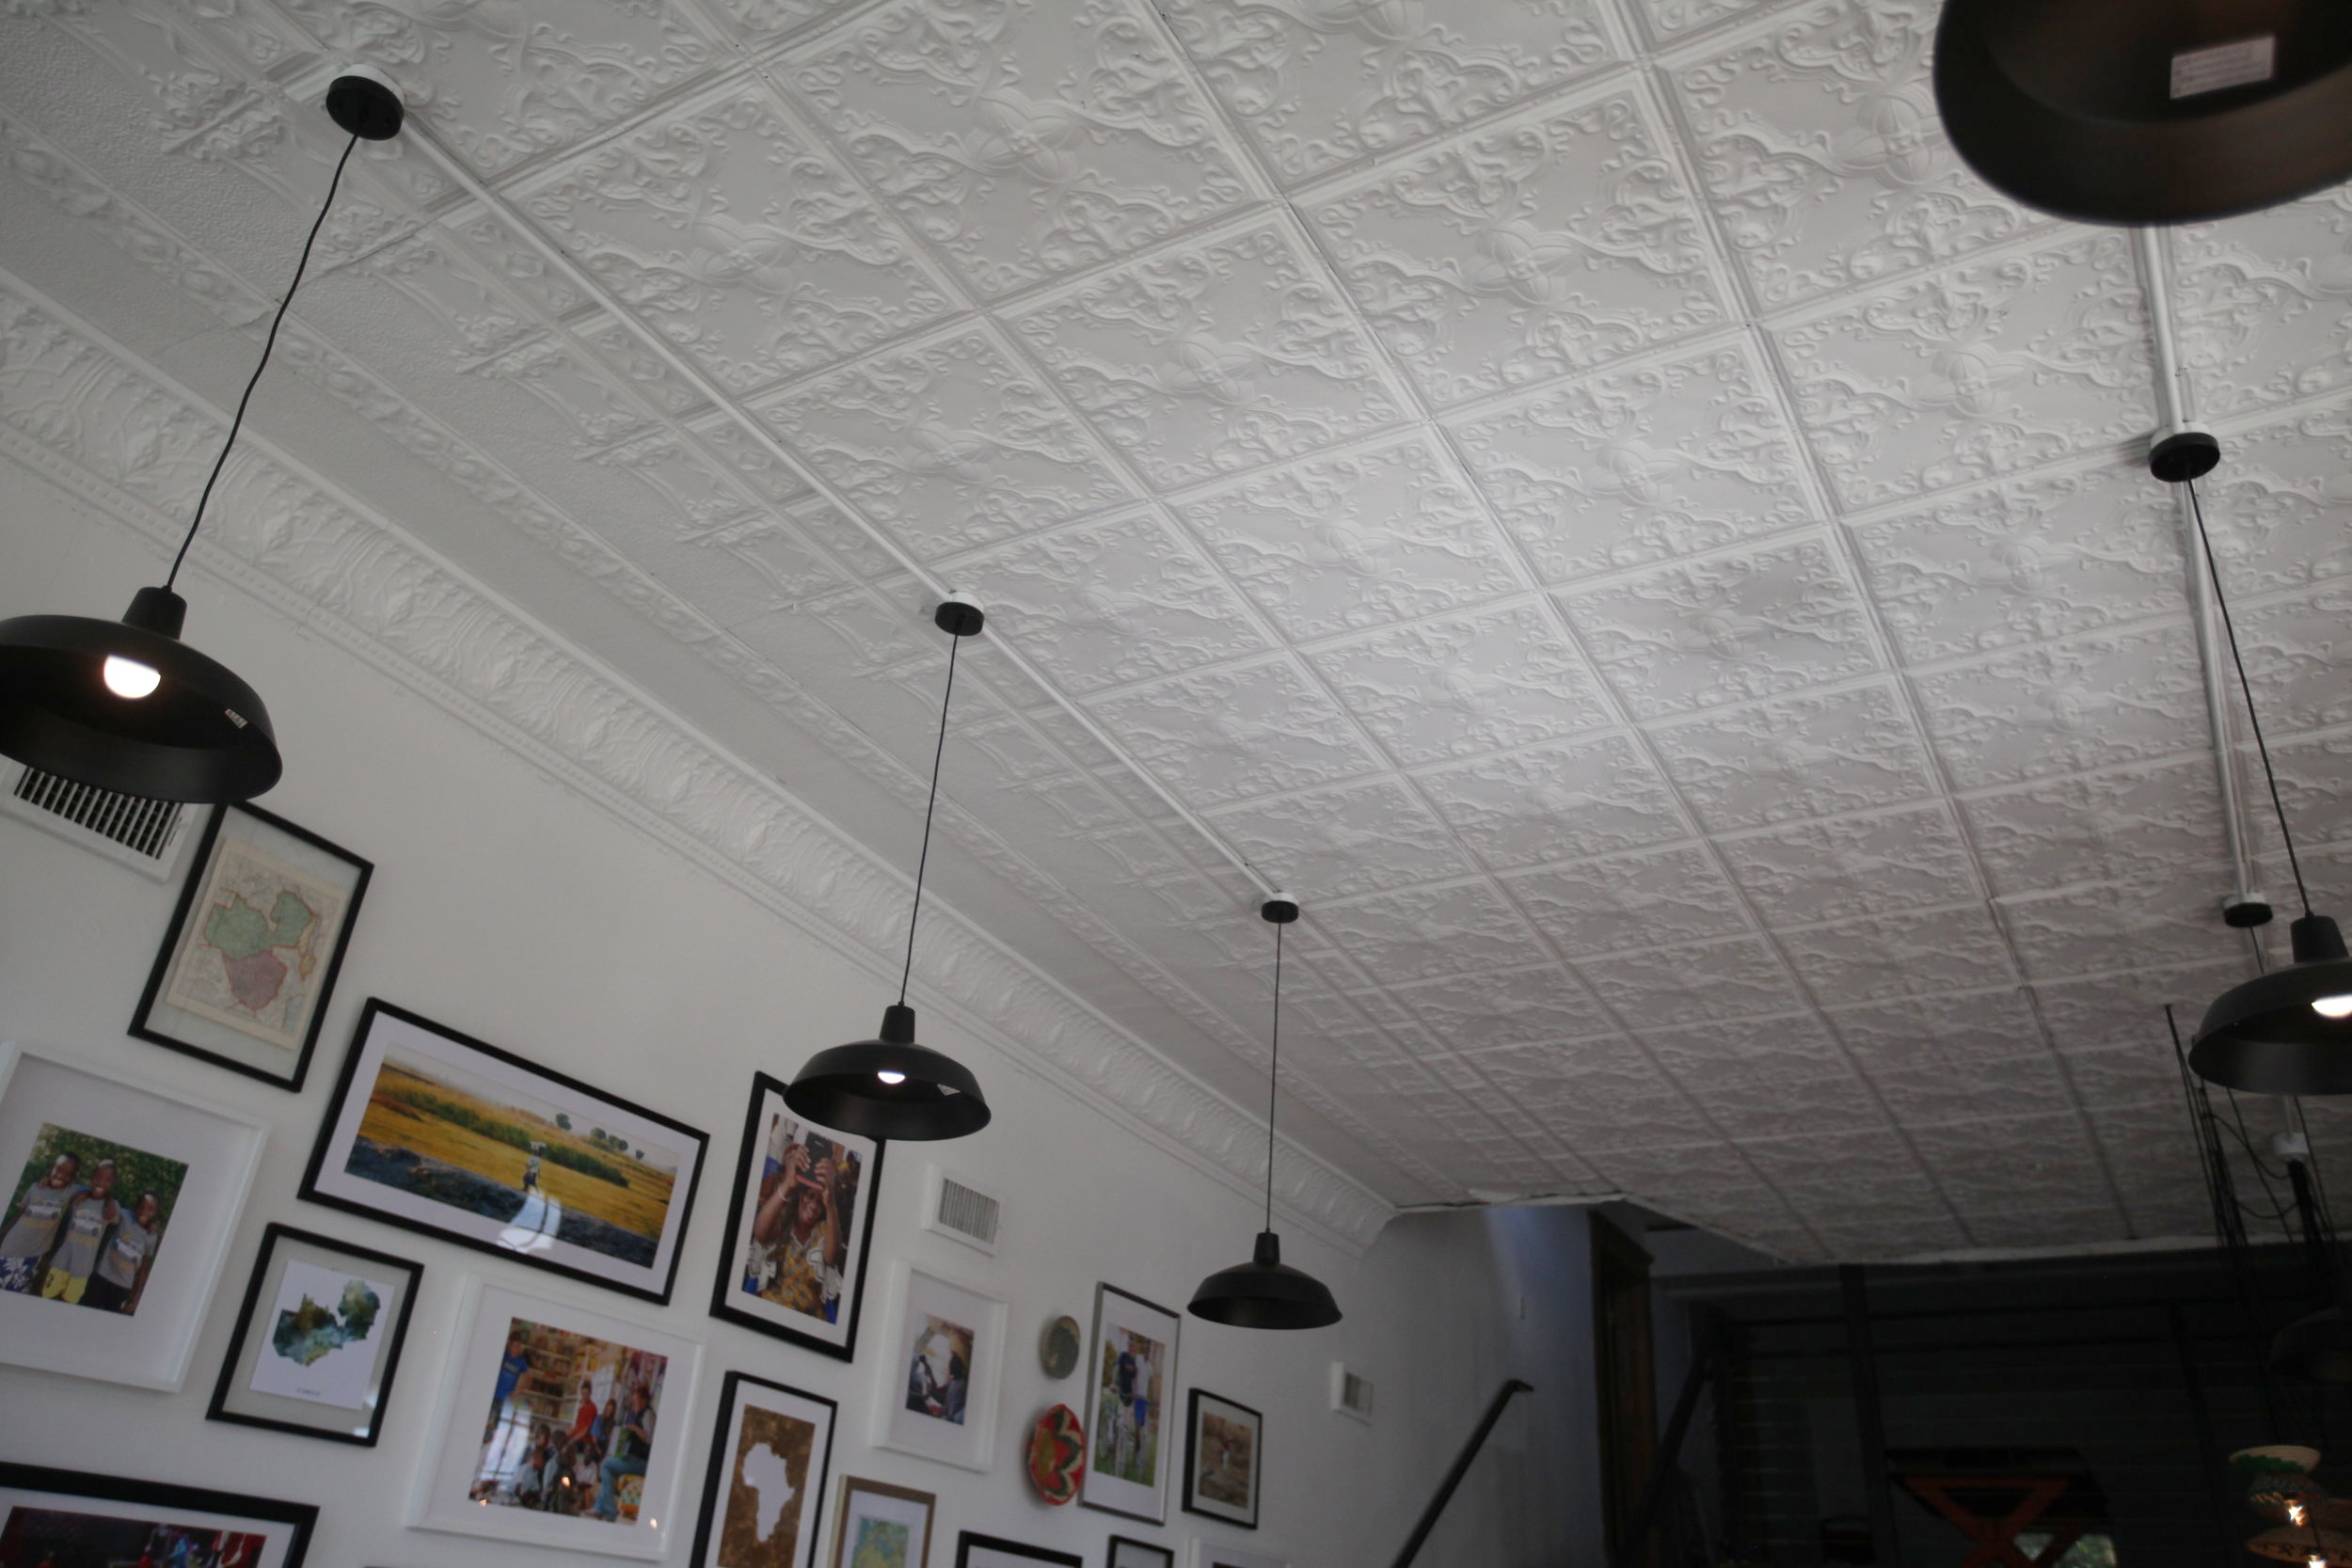 The ceiling tiles are original to the building and made of tin.